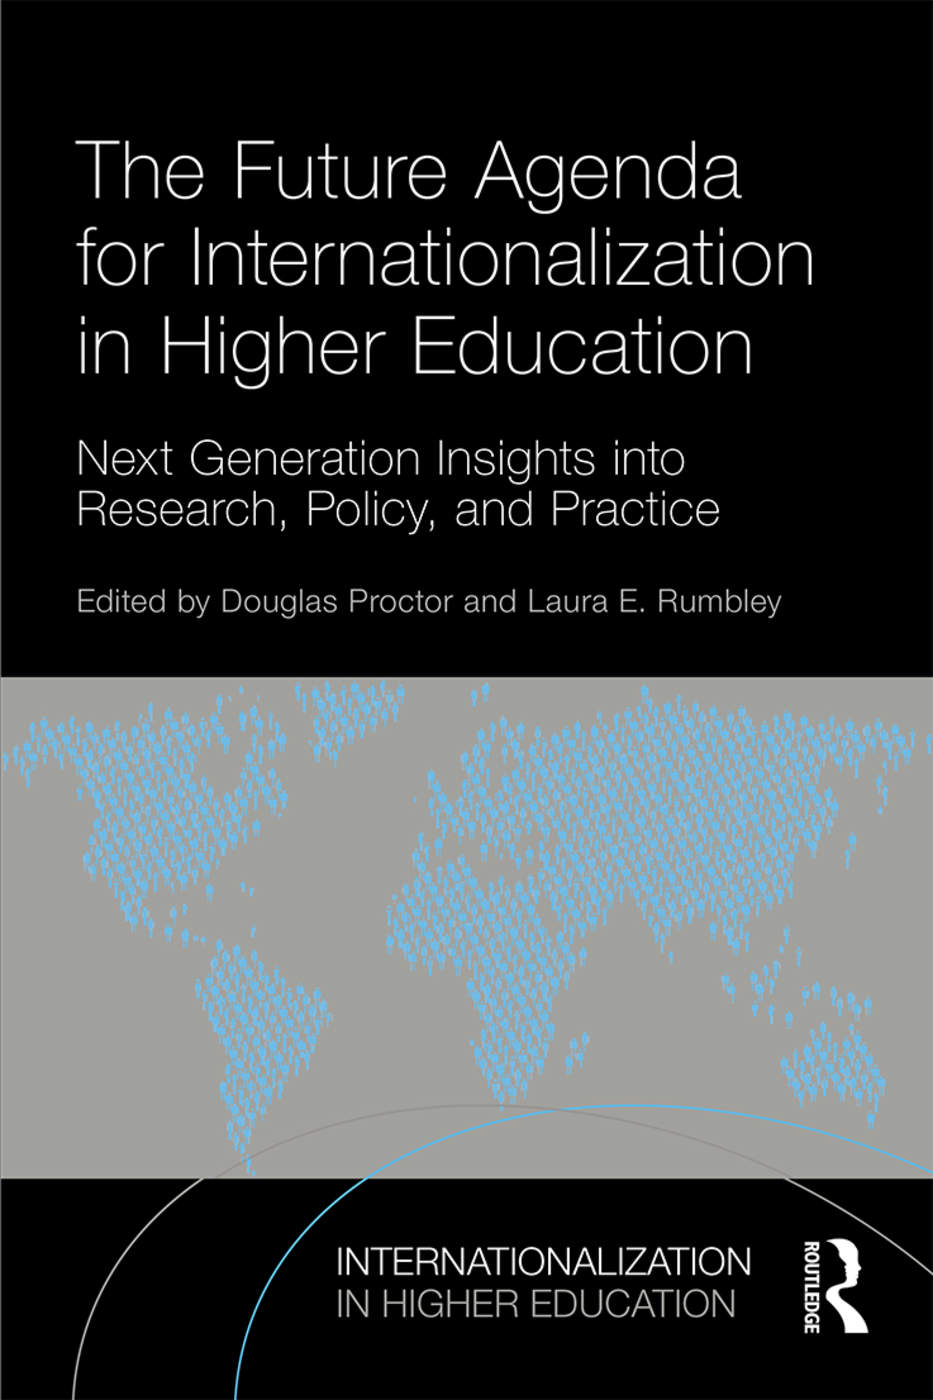 The Future Agenda for Internationalization in Higher Education